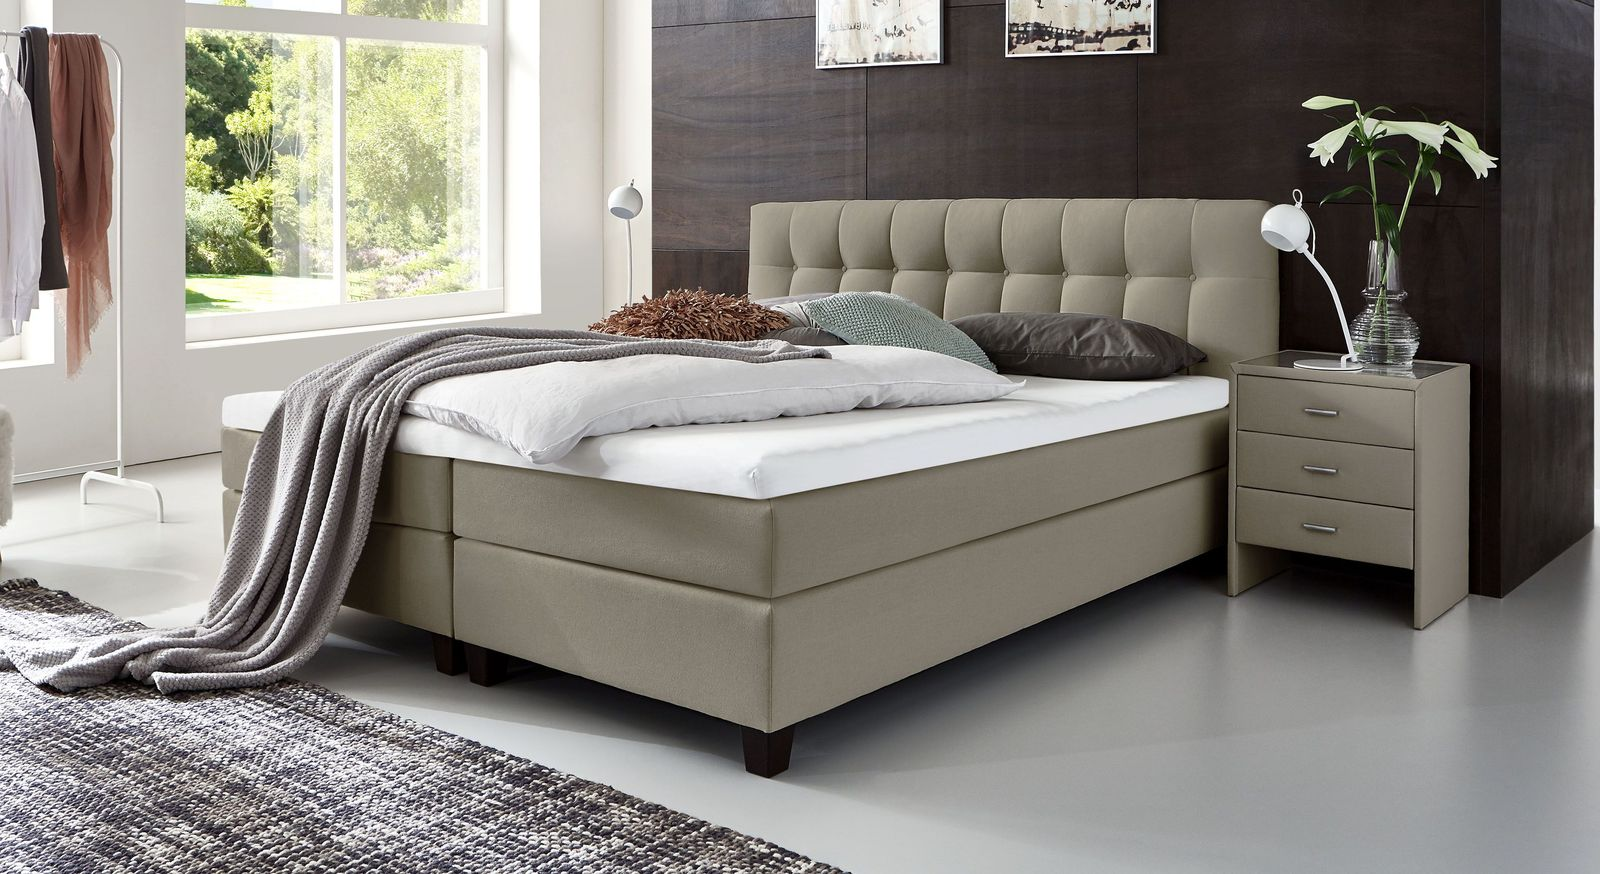 53 cm hohes Boxspringbett Luciano aus Webstoff in Taupe